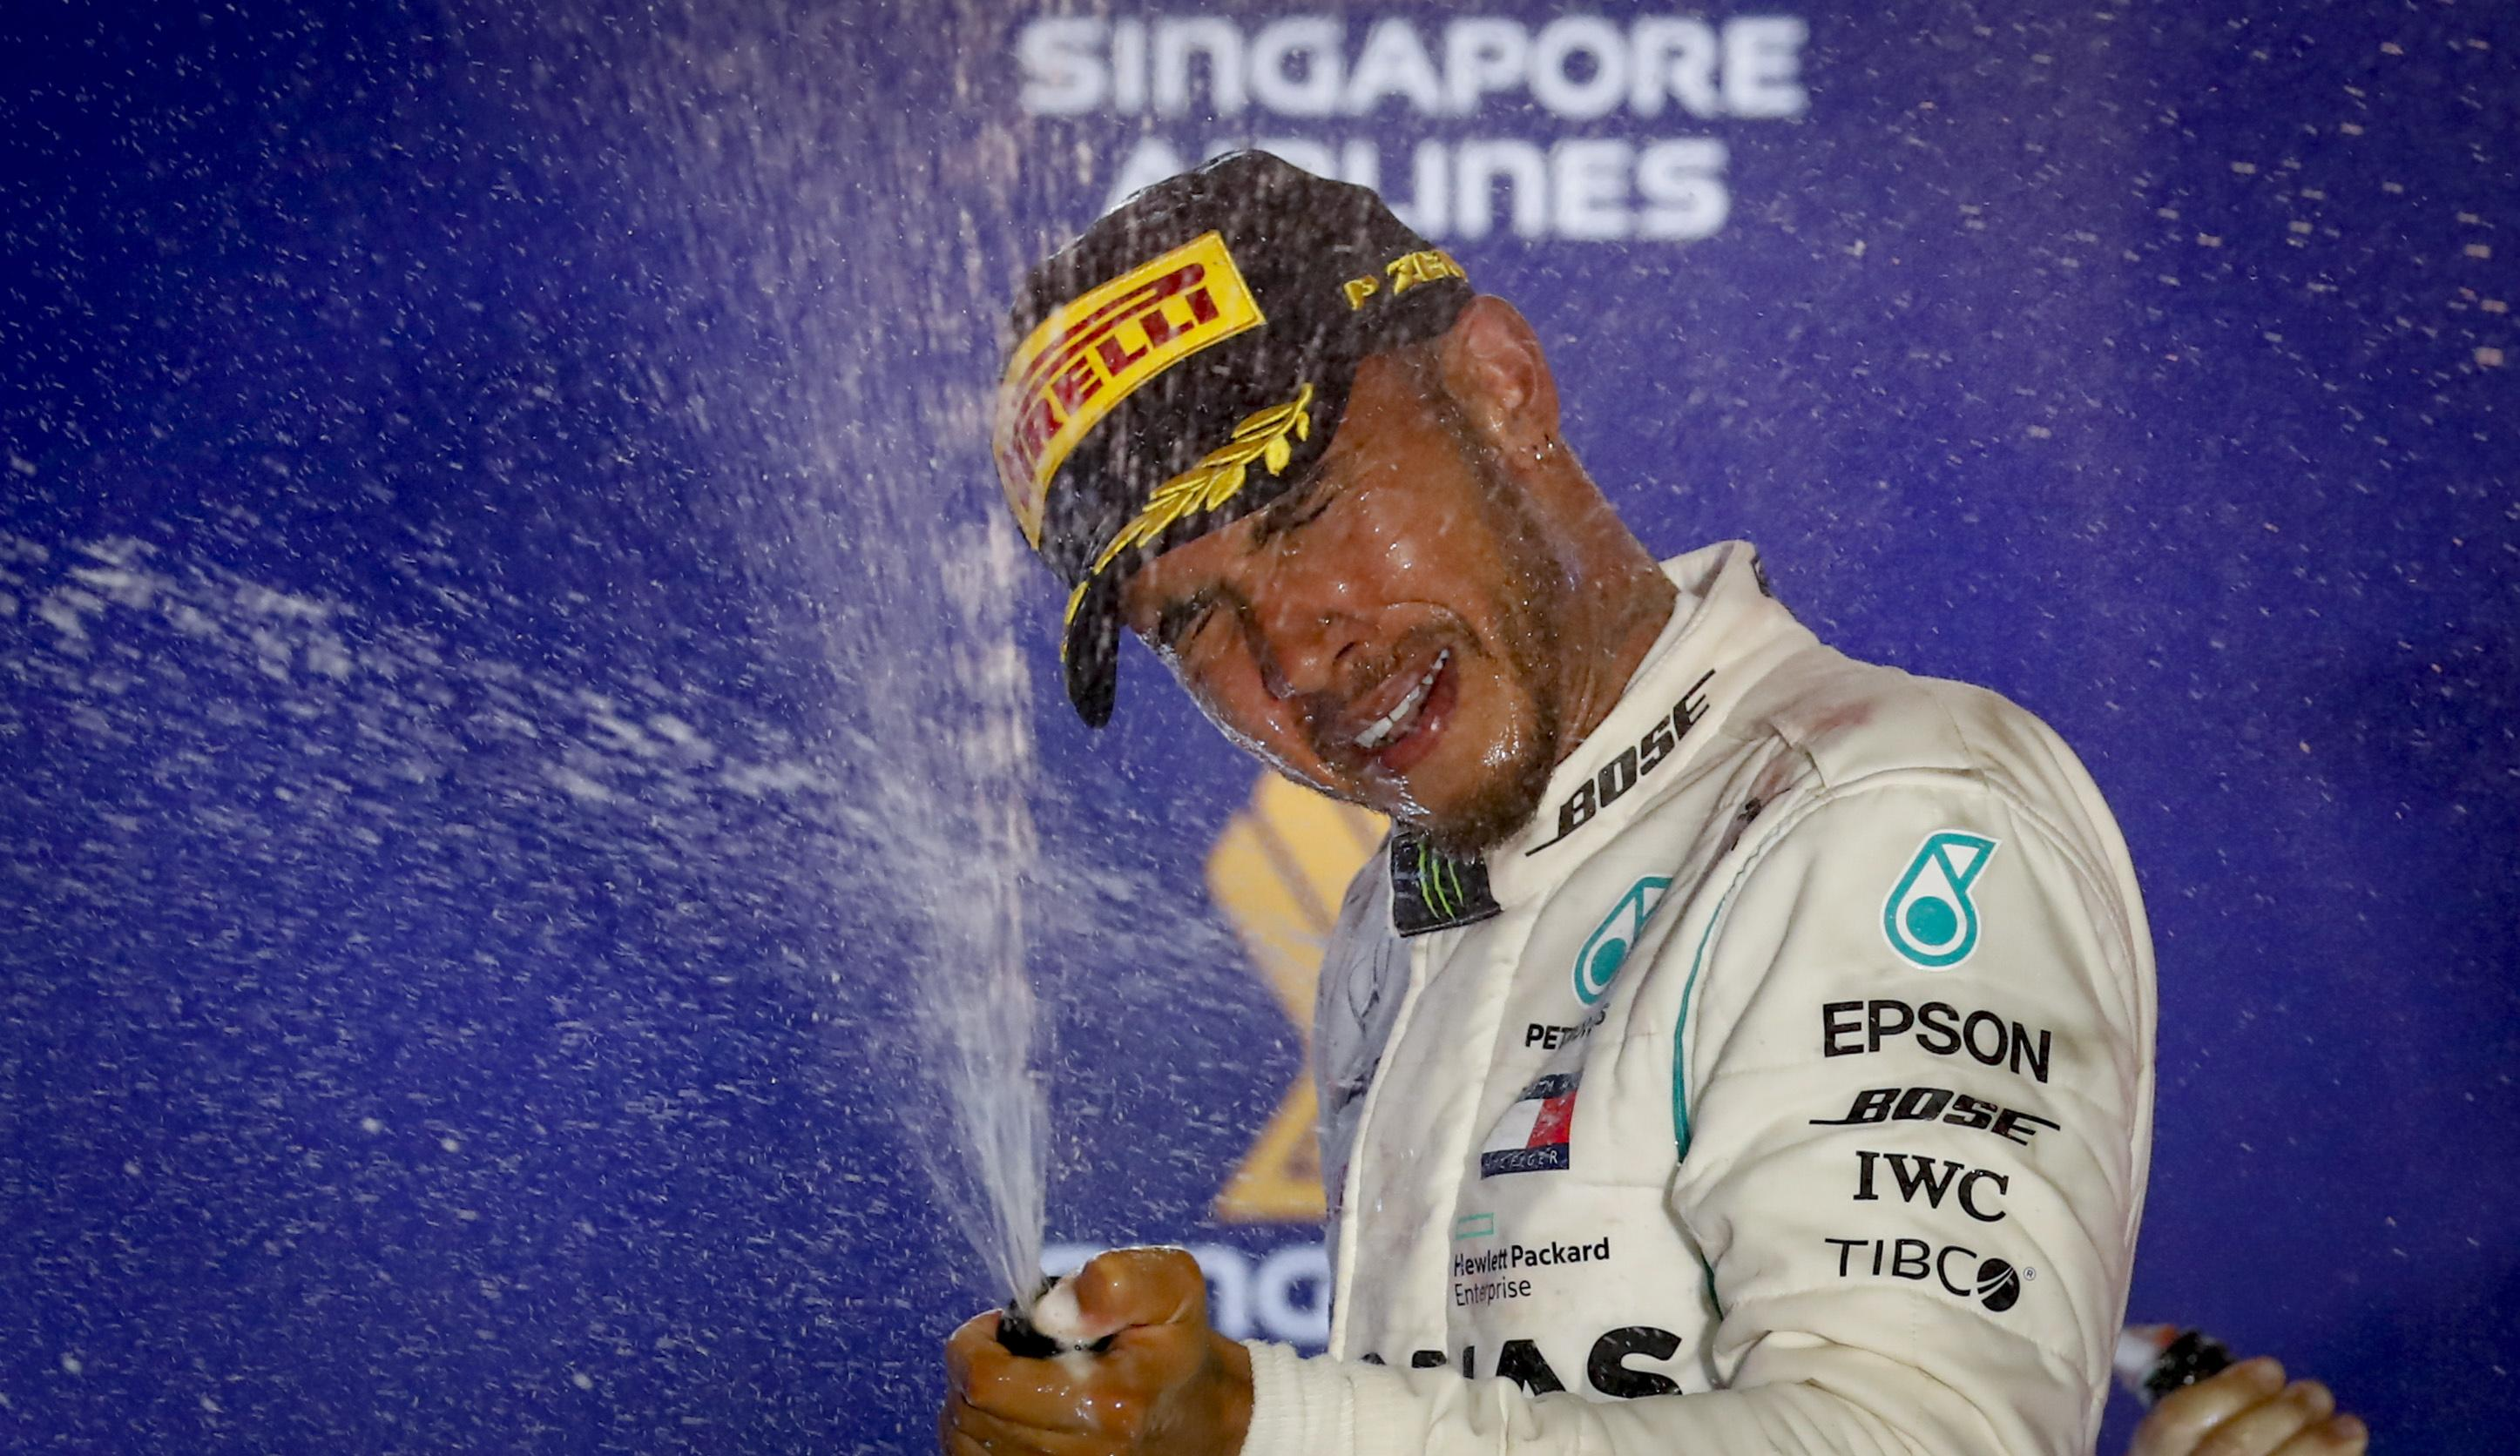 Lewis Hamilton is edging ever closer to the world championship